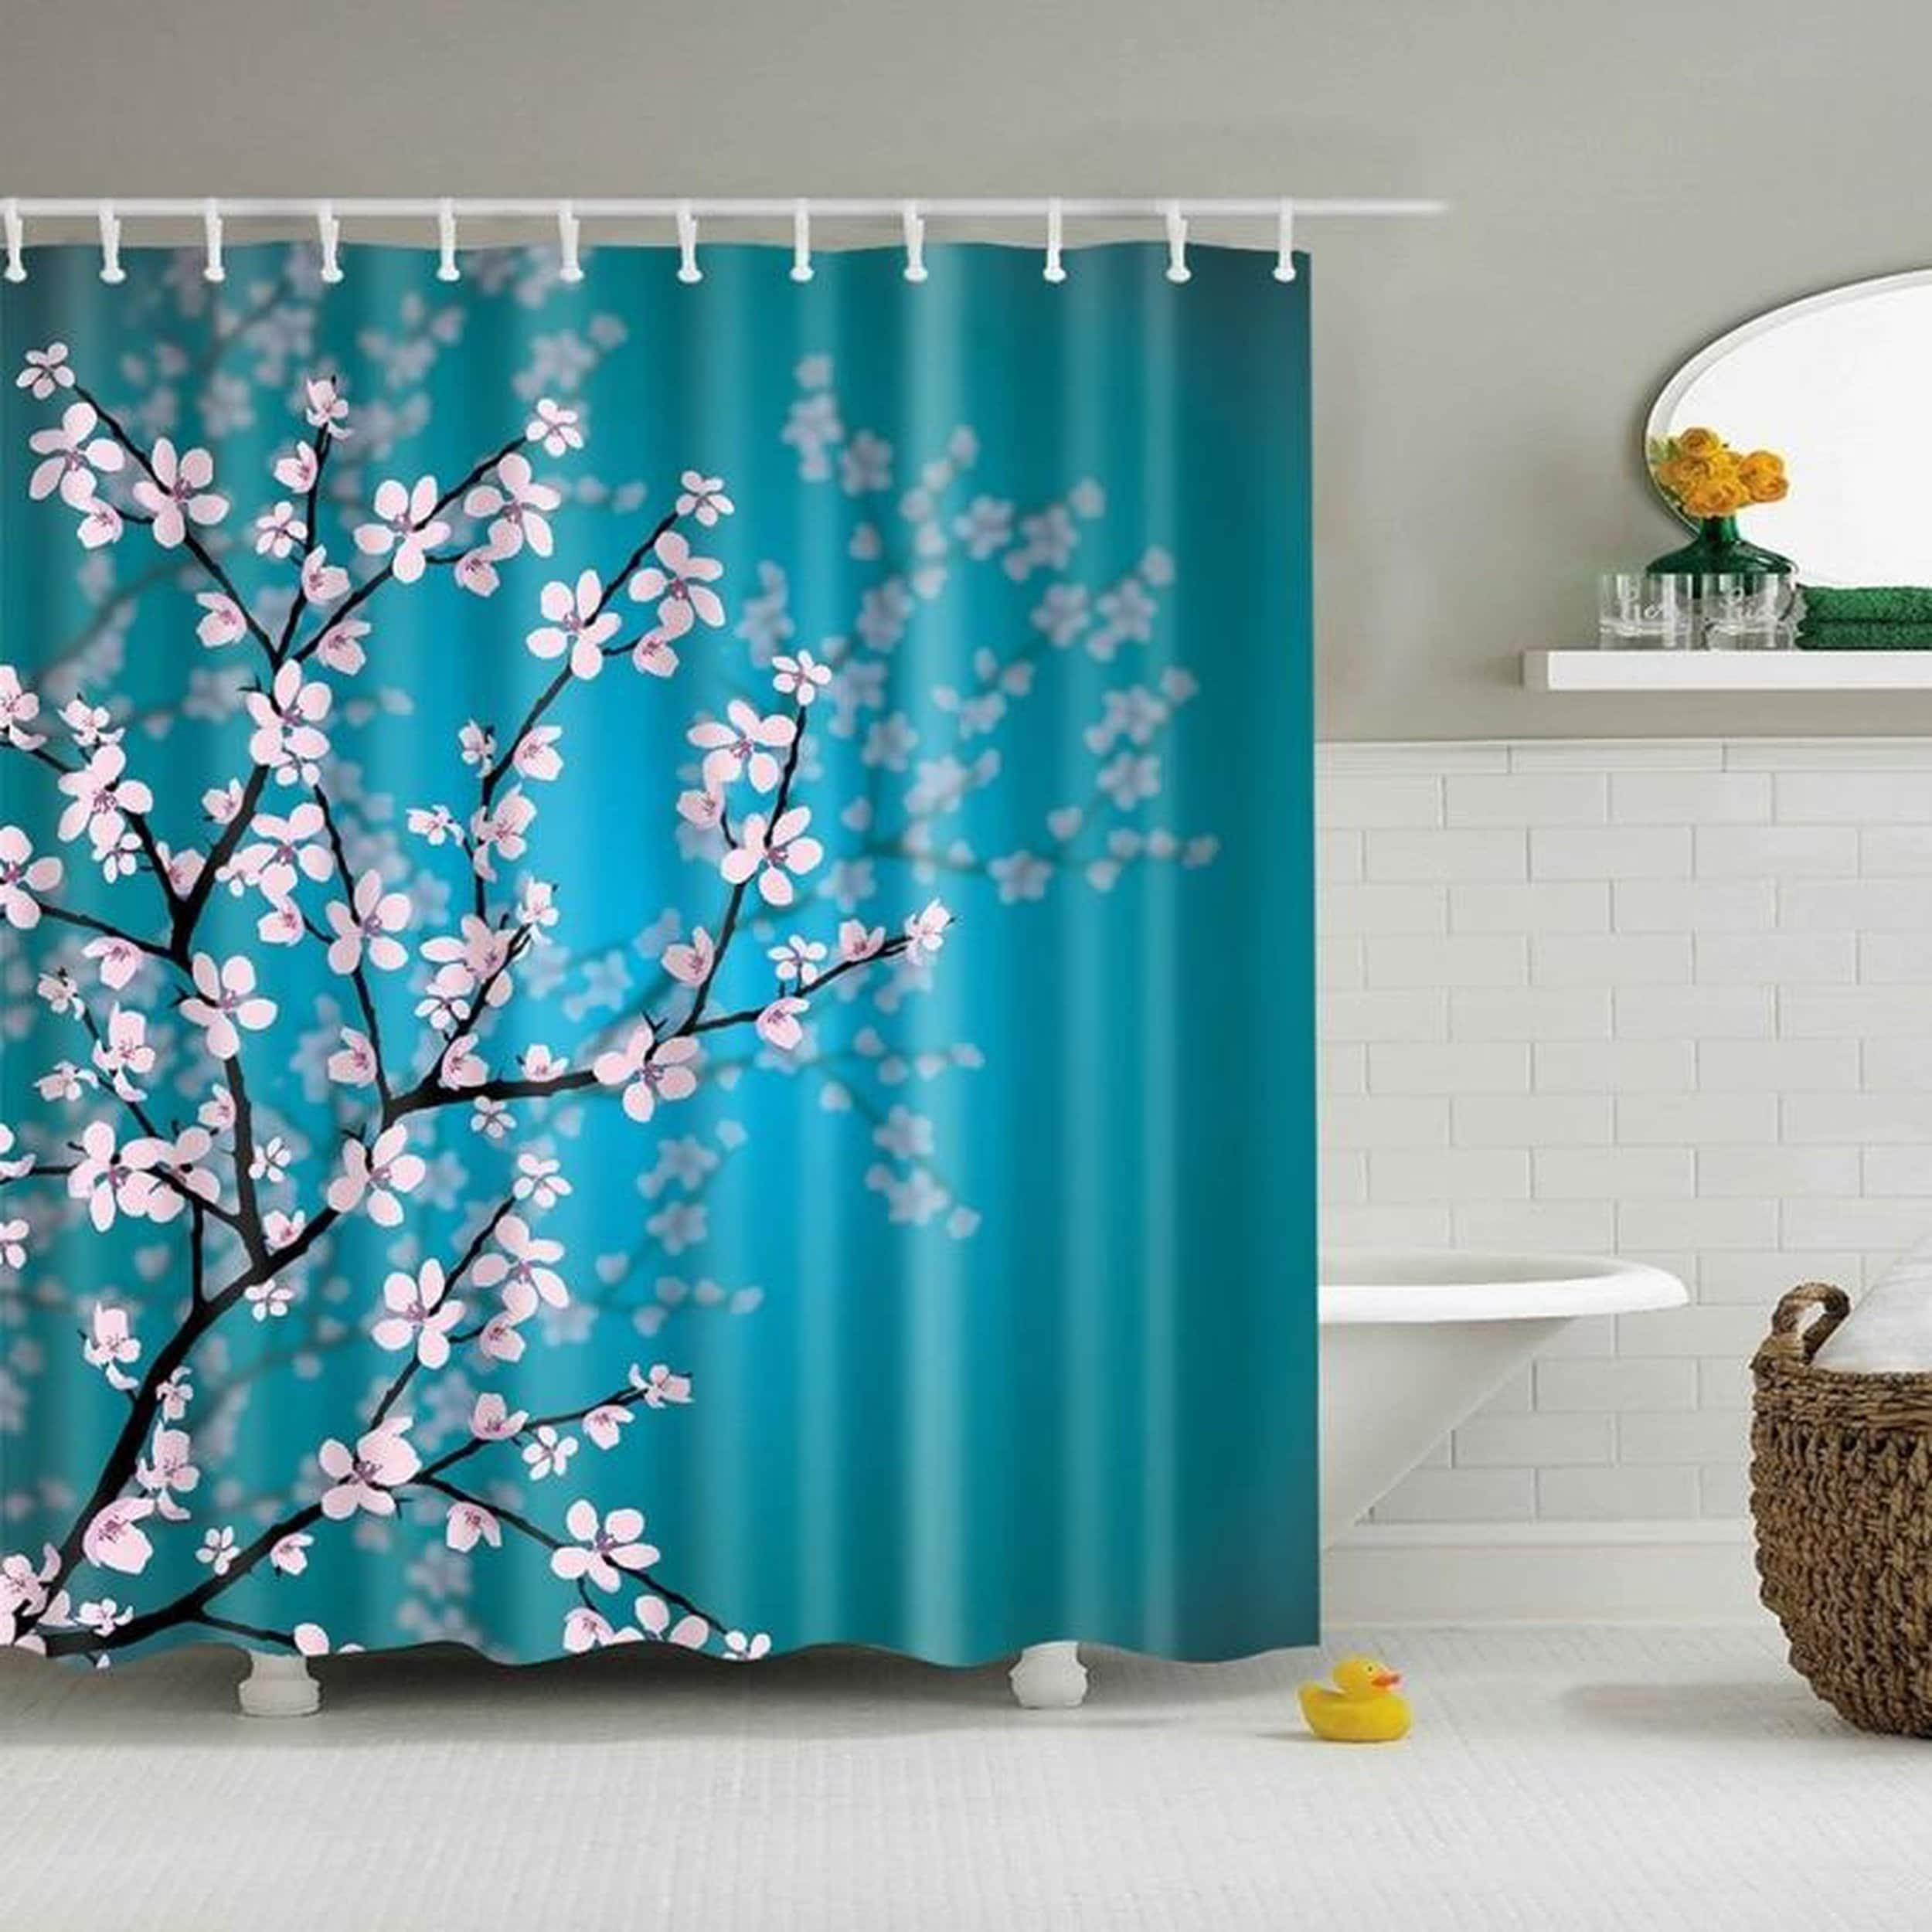 Bathroom Shower Curtains Pink Blossoms Decor Leaves And Plants Spring Flowers On Sale Overstock 25356688